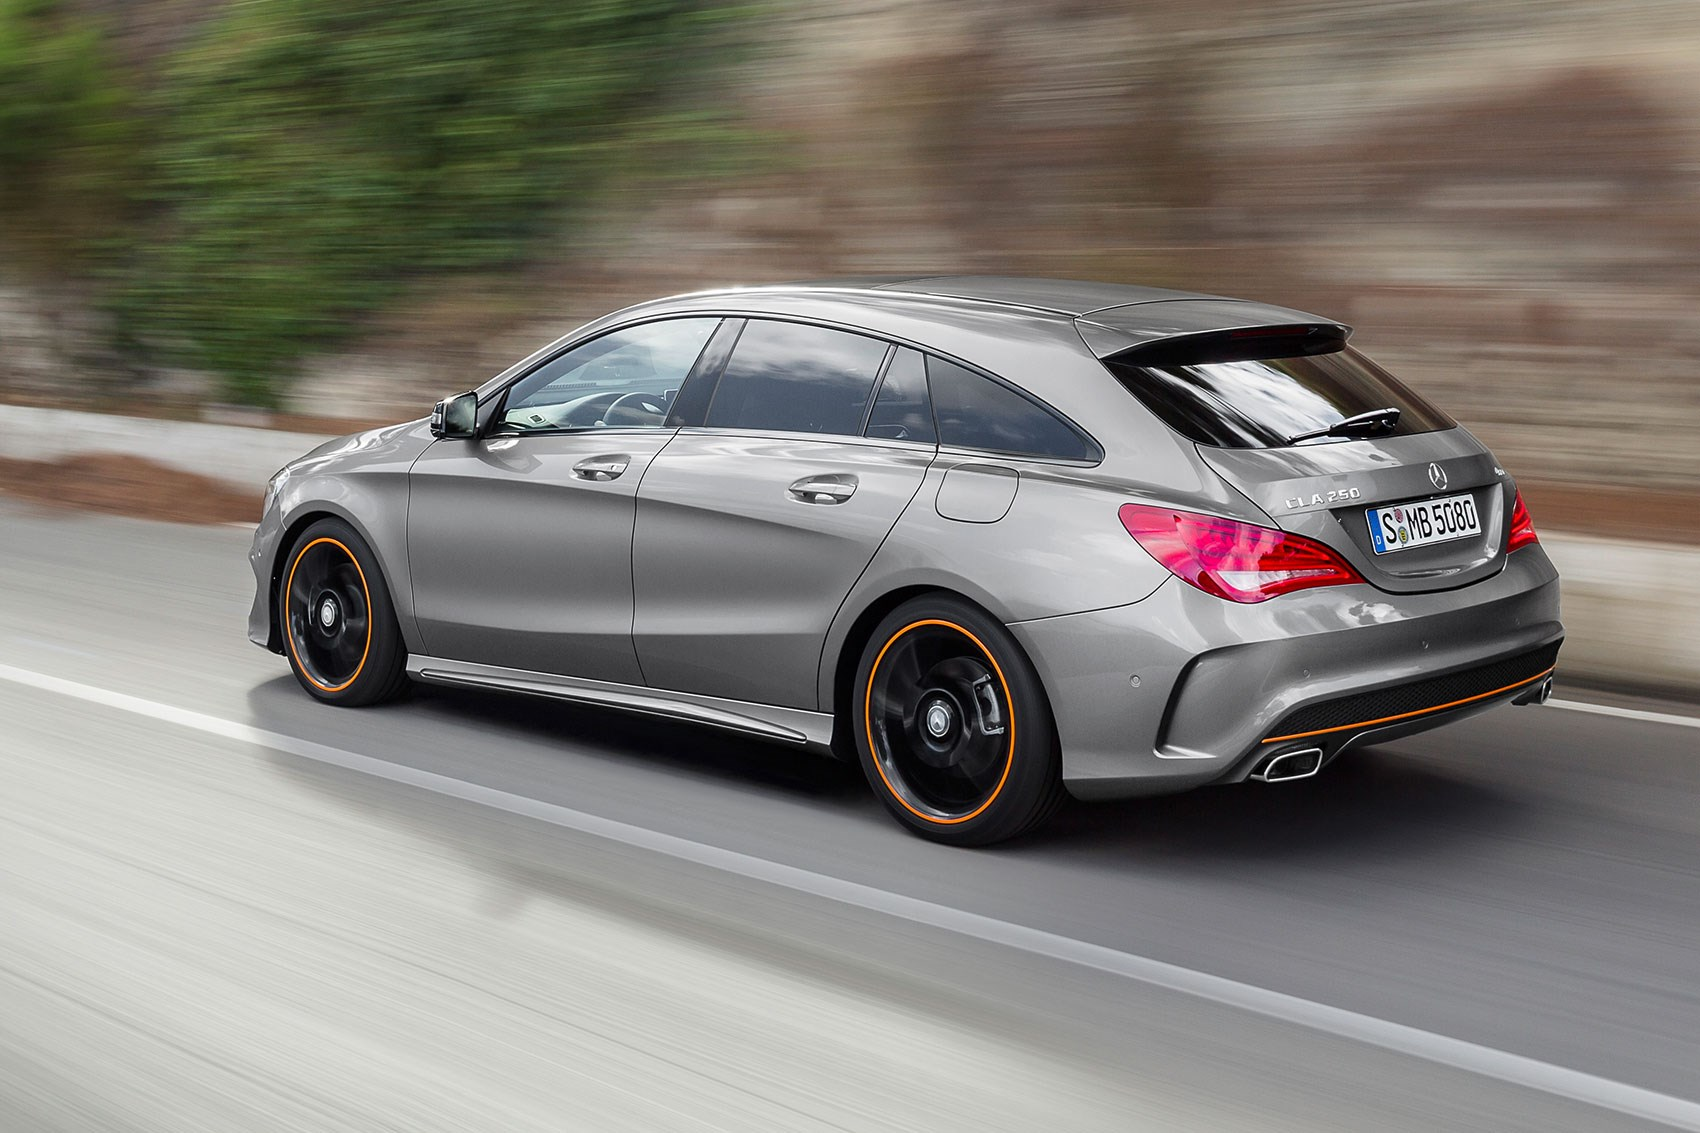 Mercedes Cla Shooting Brake 2015 Review By Car Magazine